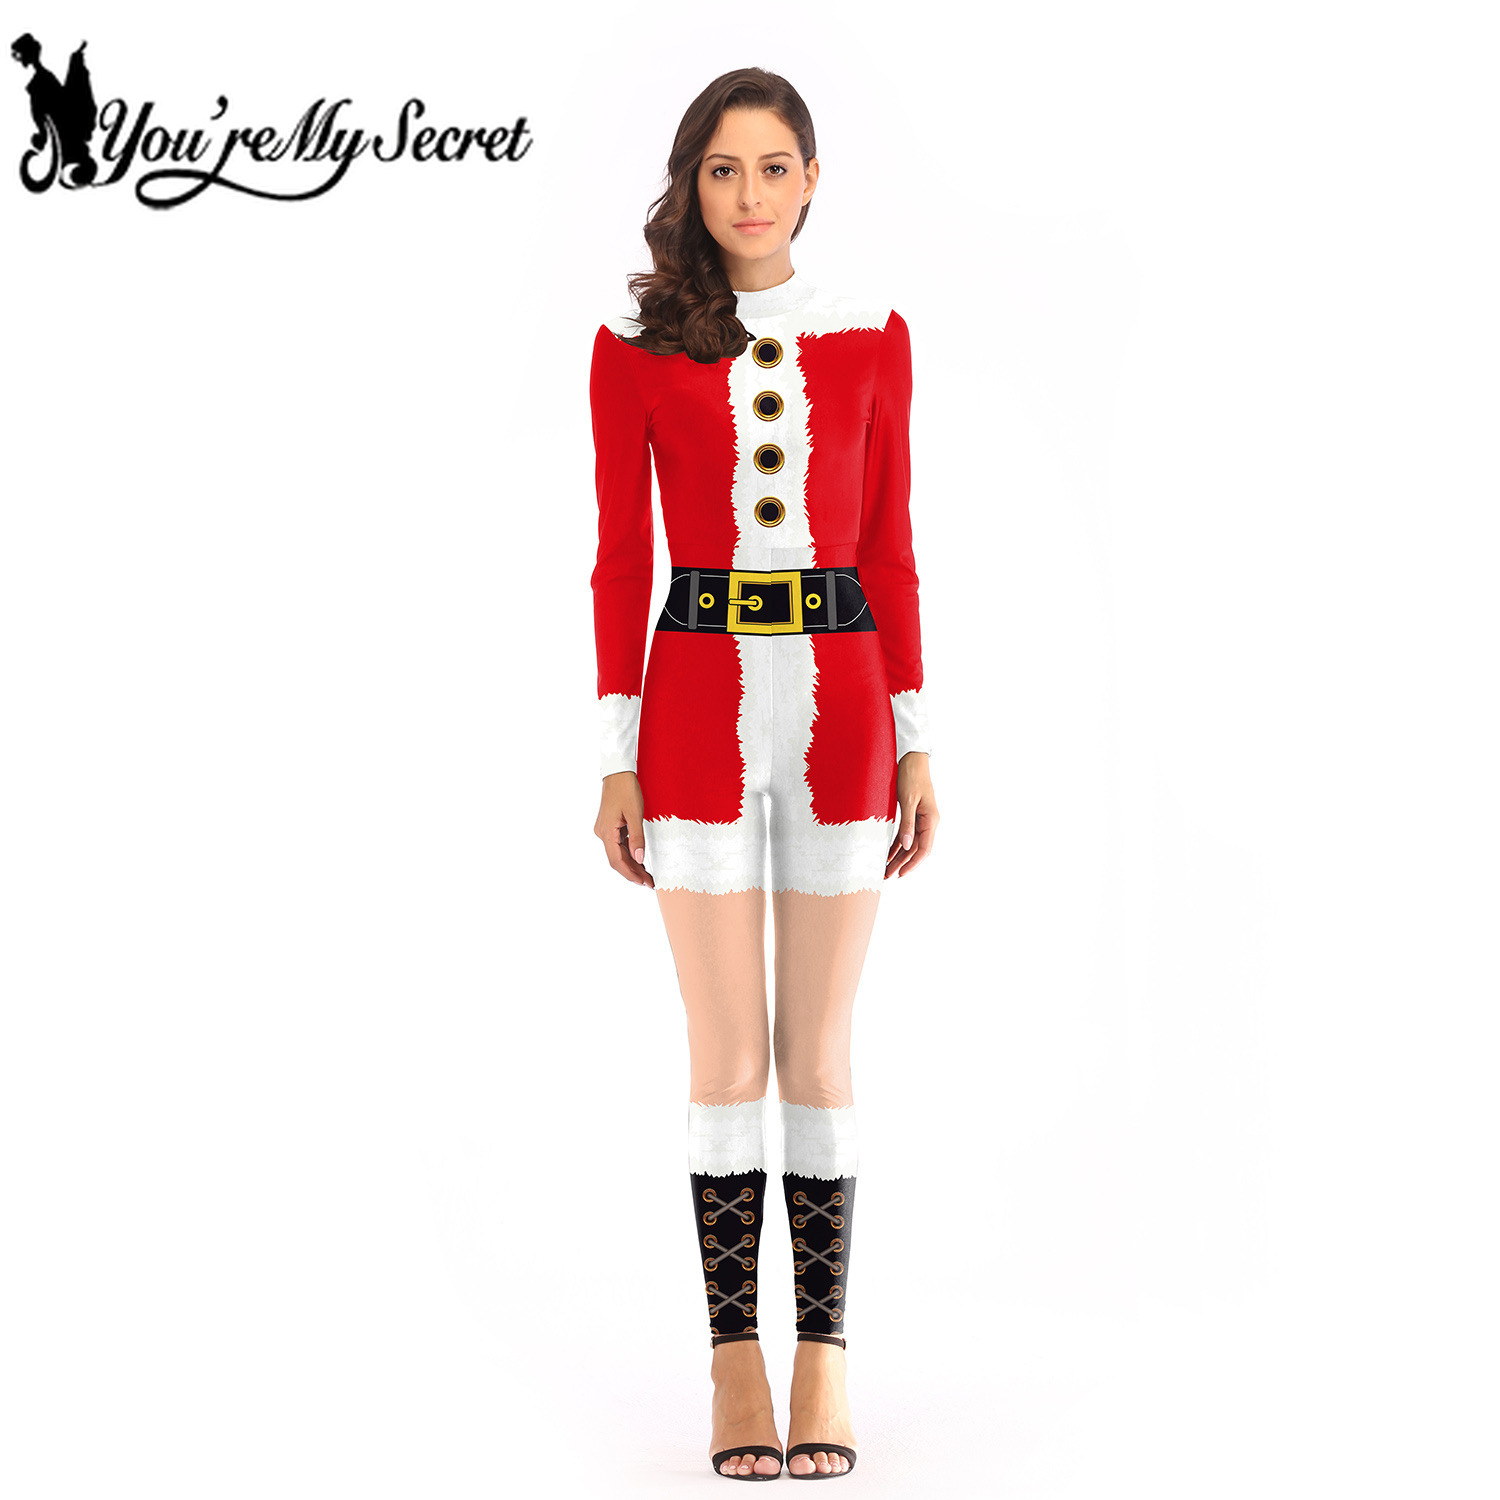 [You're My Secret] 2019 Winter Christmas Women's Holiday Santa Claus Jumpsuit Red Party Digital Print Costume for Adult Bodysuit